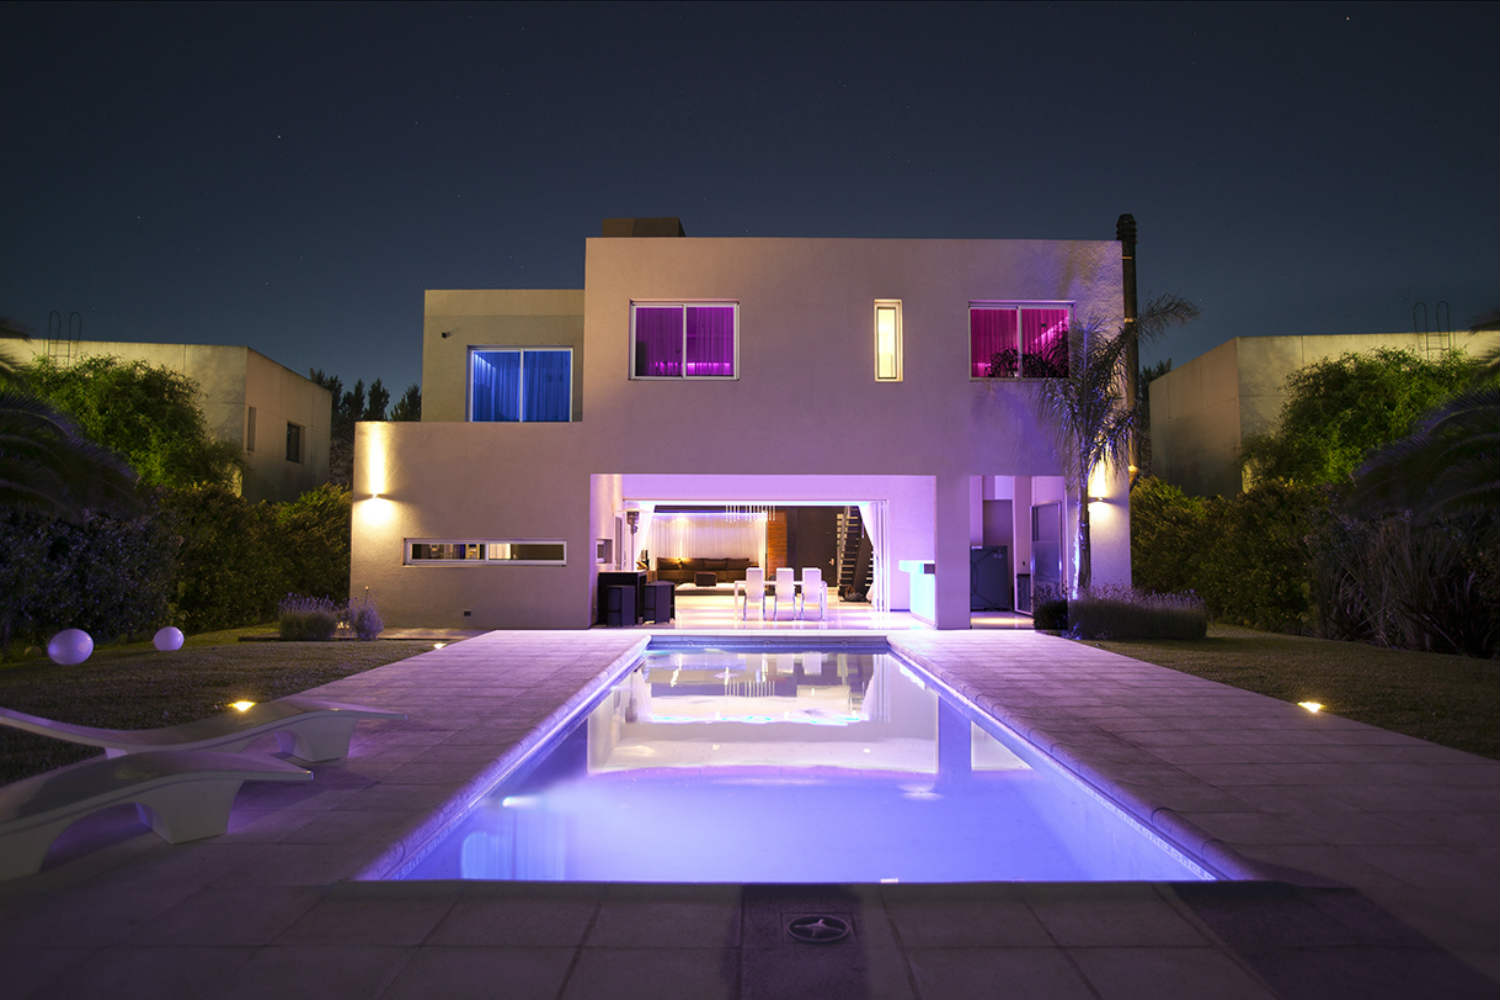 Casa Fontela in Buenos Aires, Argentina designed by WSDG. Backyard with LED illuminated swimming pool at night